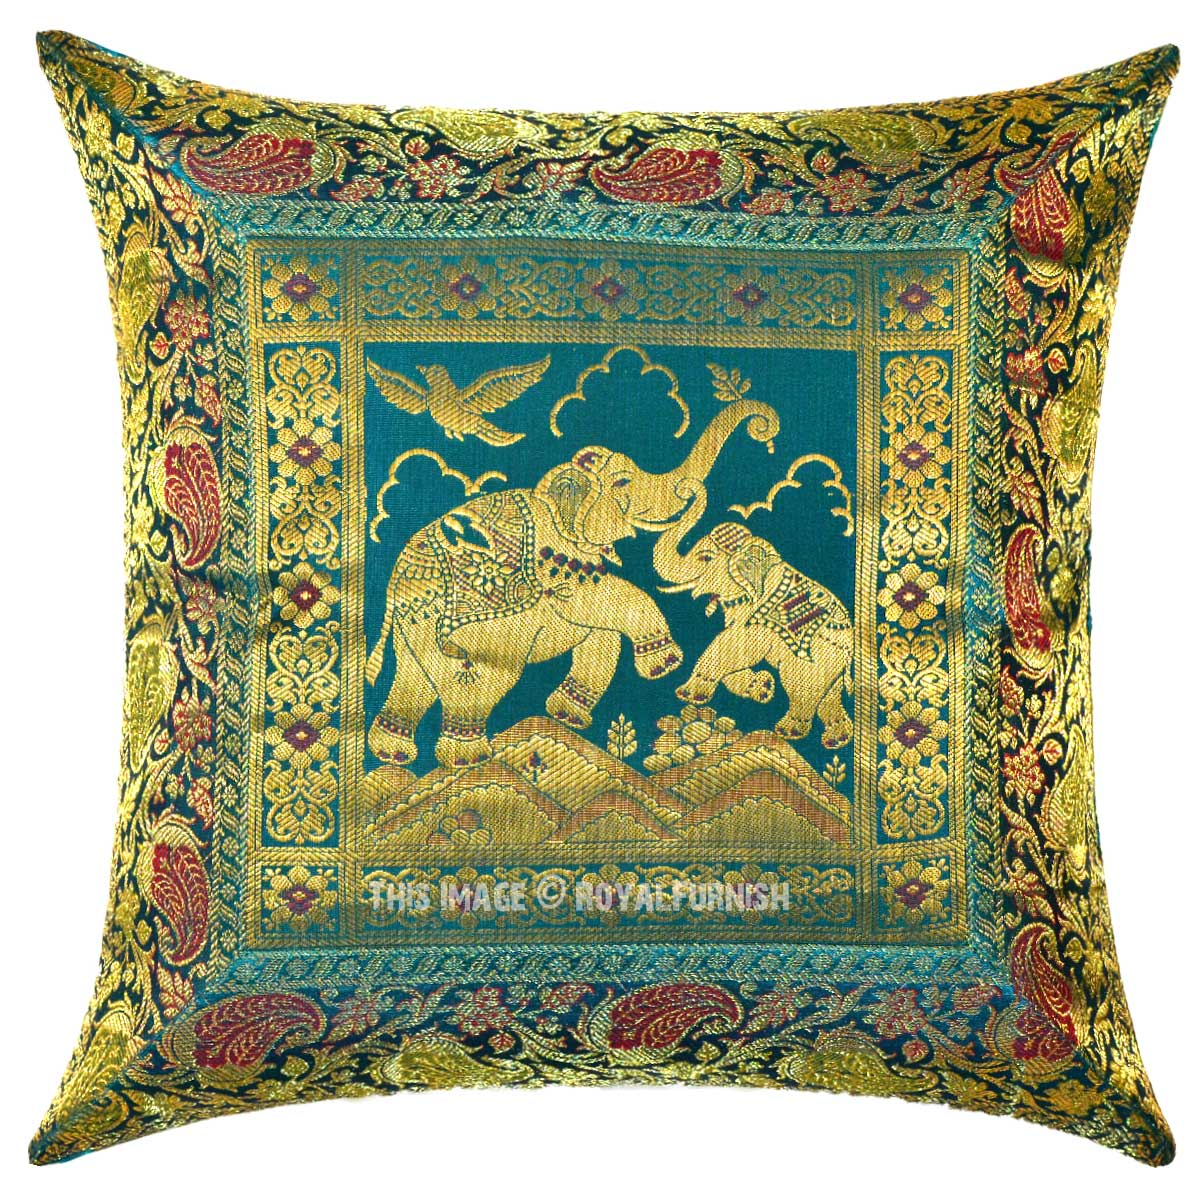 Unique Decorative Accent Pillows : Turquoise 16X16 Decorative Unique Baby Elephants Silk Square Pillow Cover - RoyalFurnish.com